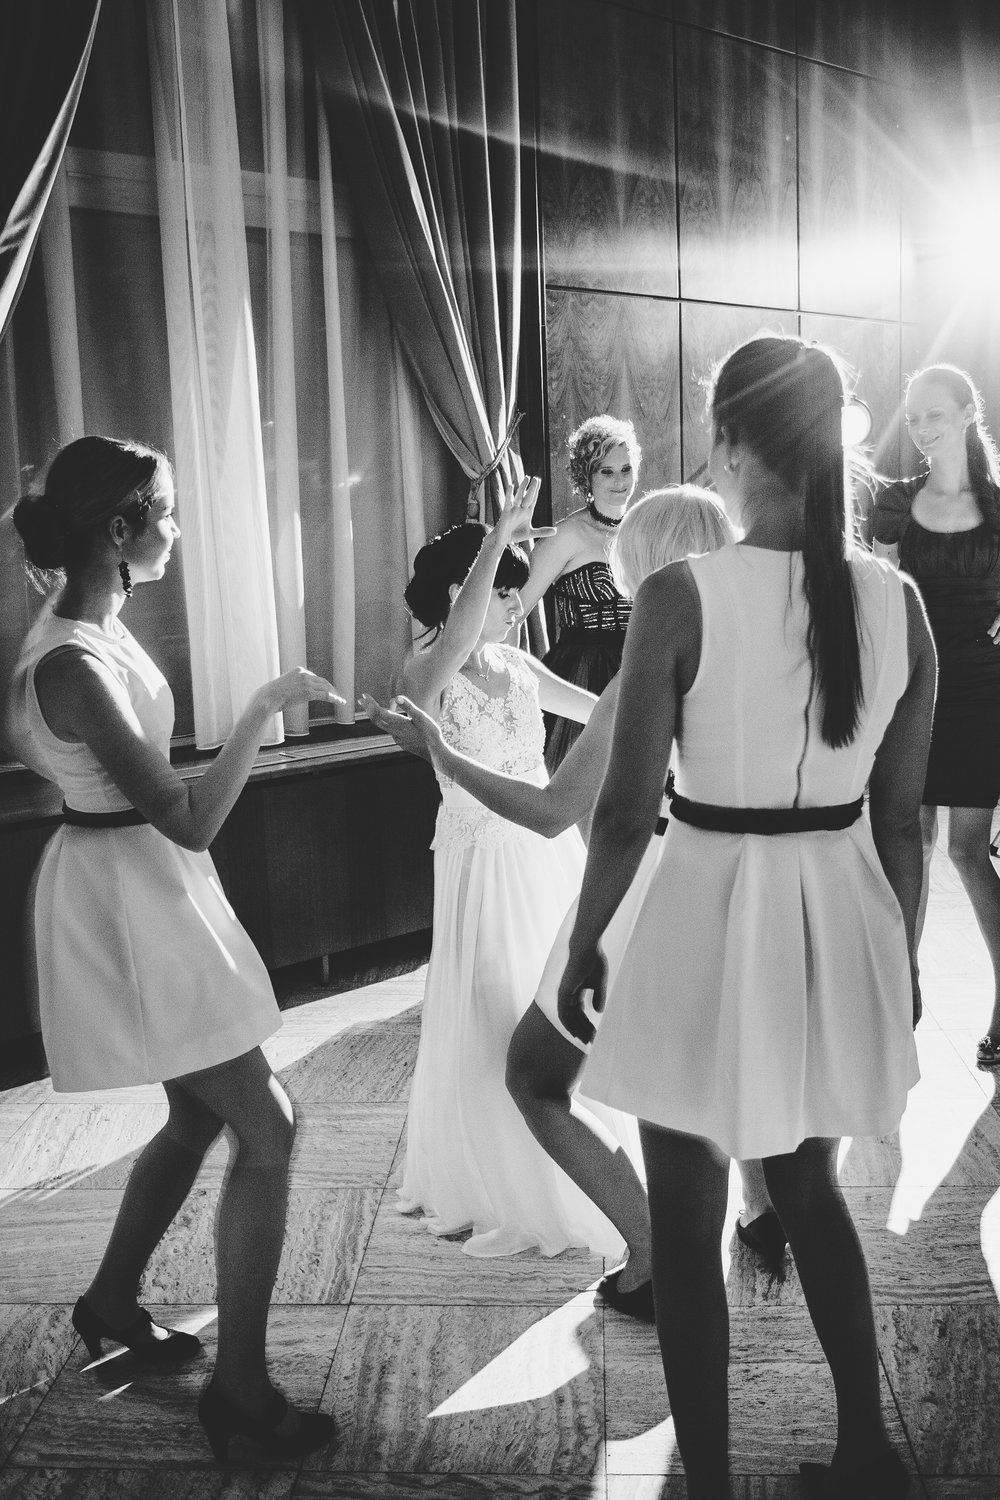 destination-wedding-photographer-slovakia-bratislava-bw-documentary-reception-dancing-bride.jpg